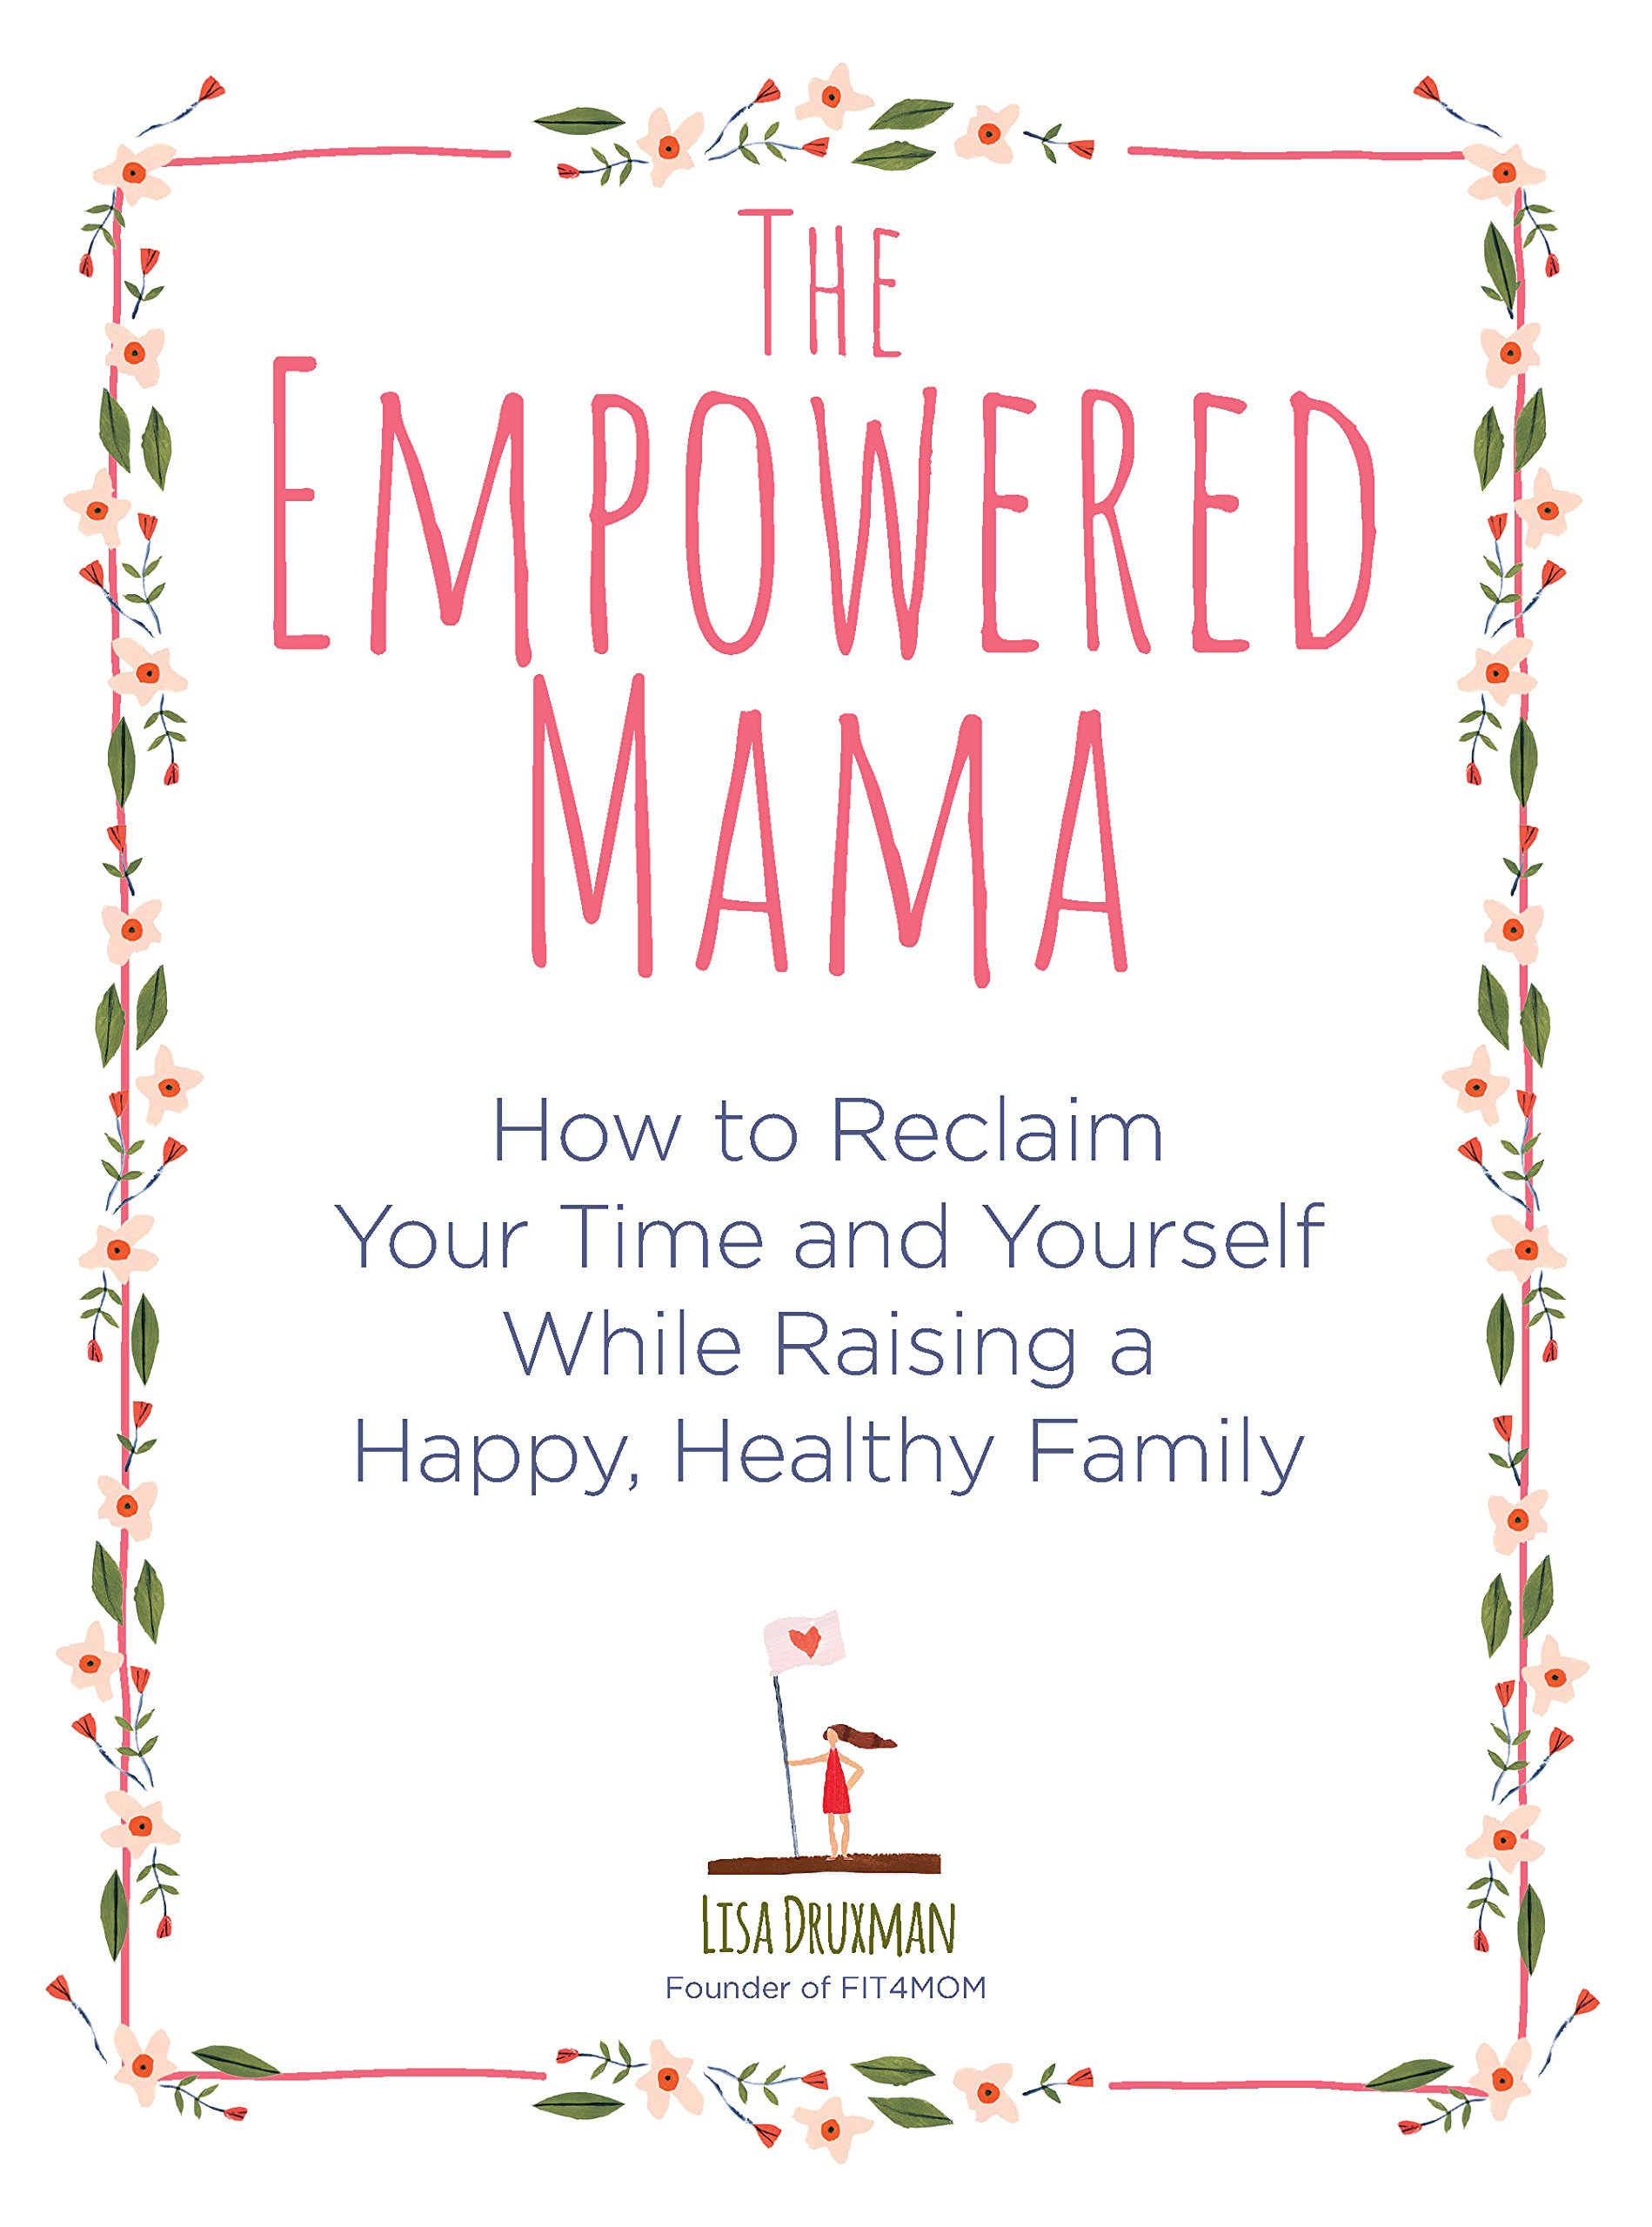 The Empowered Mama: How to Reclaim Your Time and Yourself while Raising a Happy, Healthy Family PDF